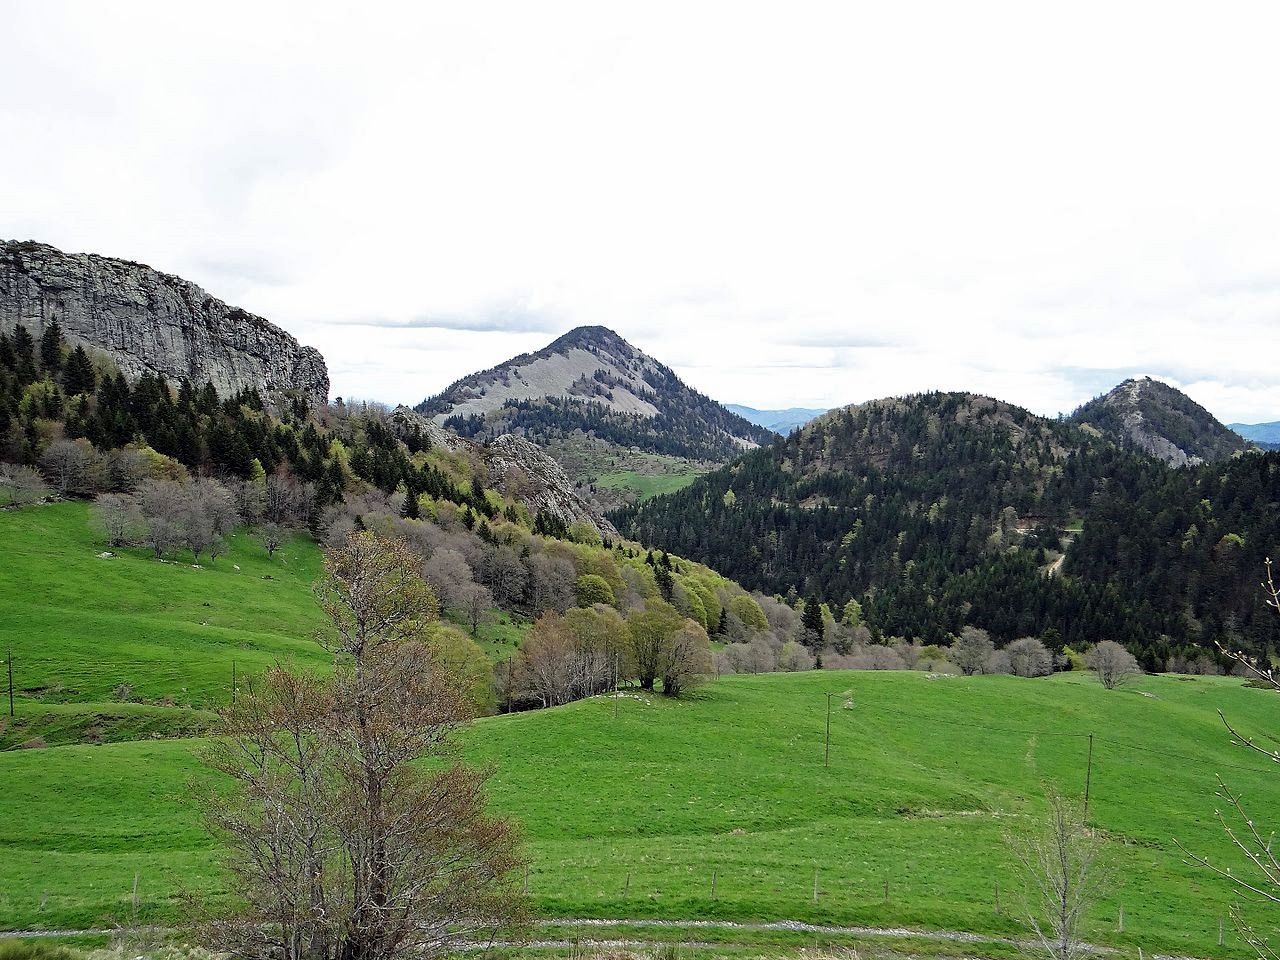 Le Rocher des Pradoux, on the left, and Suc de Sara in the center  - photo Mossot - Personal work, CC BY-SA 4.0, httpscommons.wikimedia.orgwindex.phpcurid = 48902971